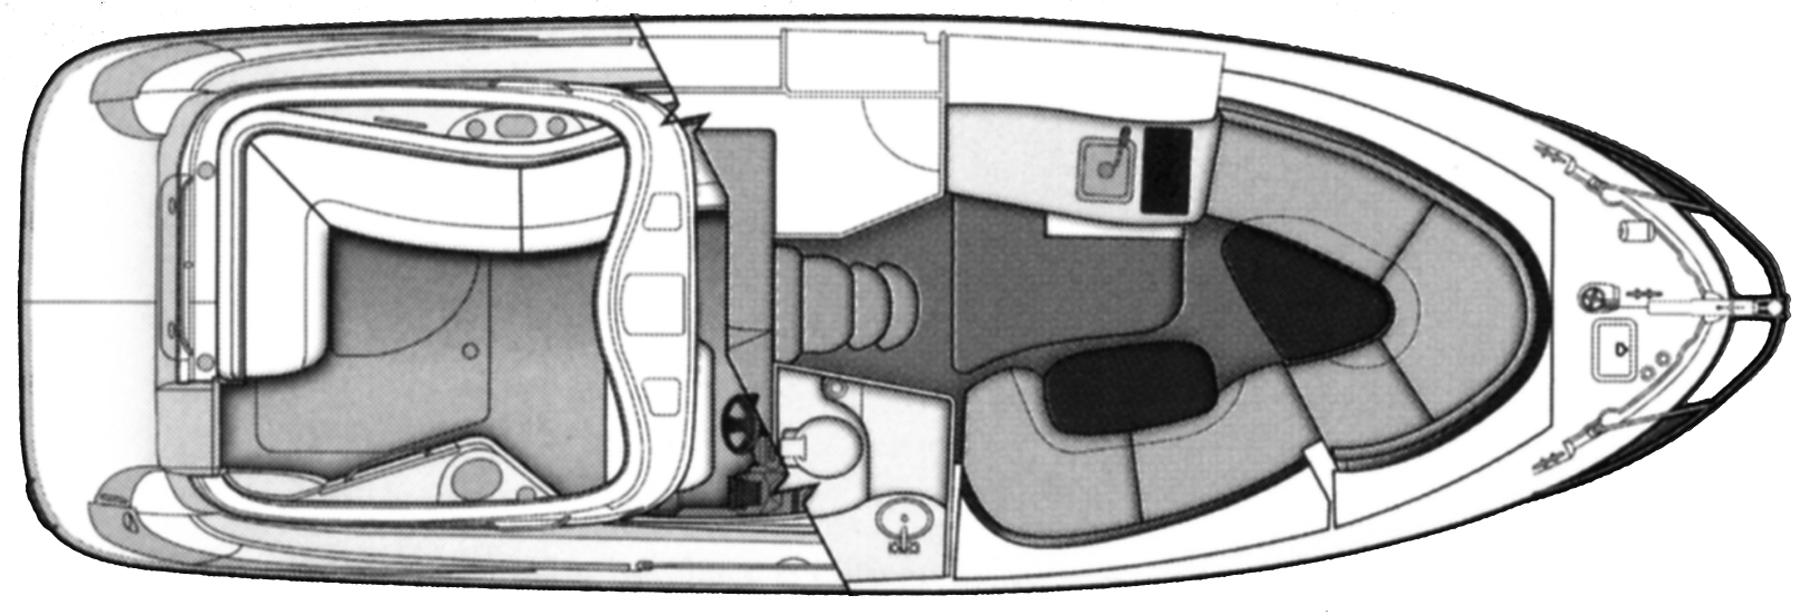 Bayliner 320-335 SB Cruiser Floor Plan 2